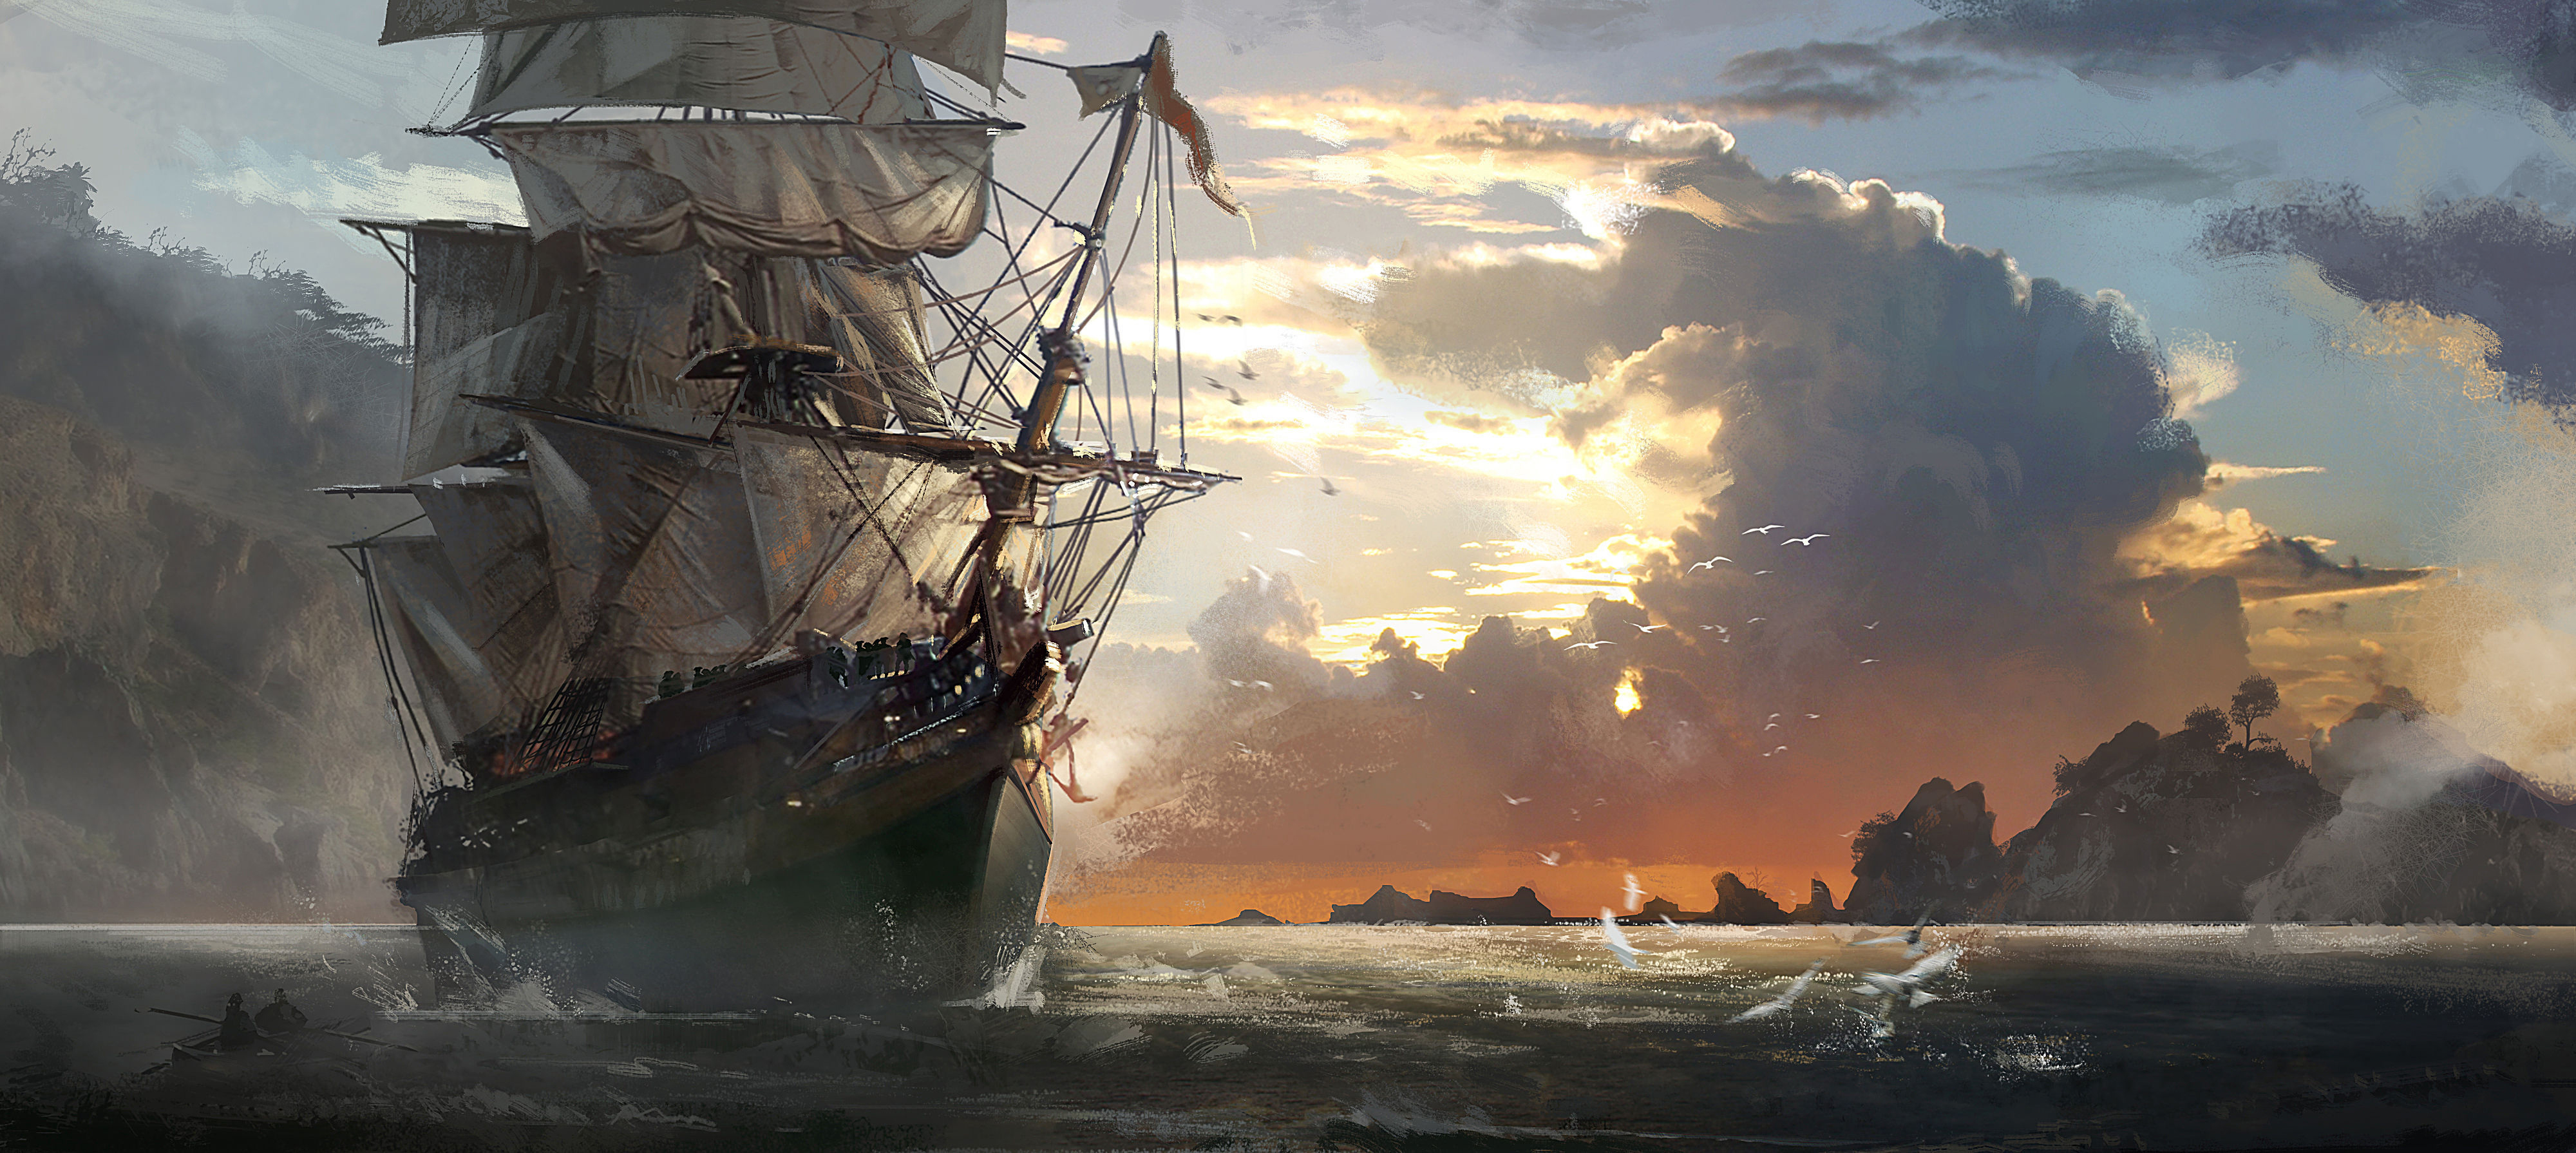 126 Assassins Creed IV Black Flag HD Wallpapers Background 4000x1790